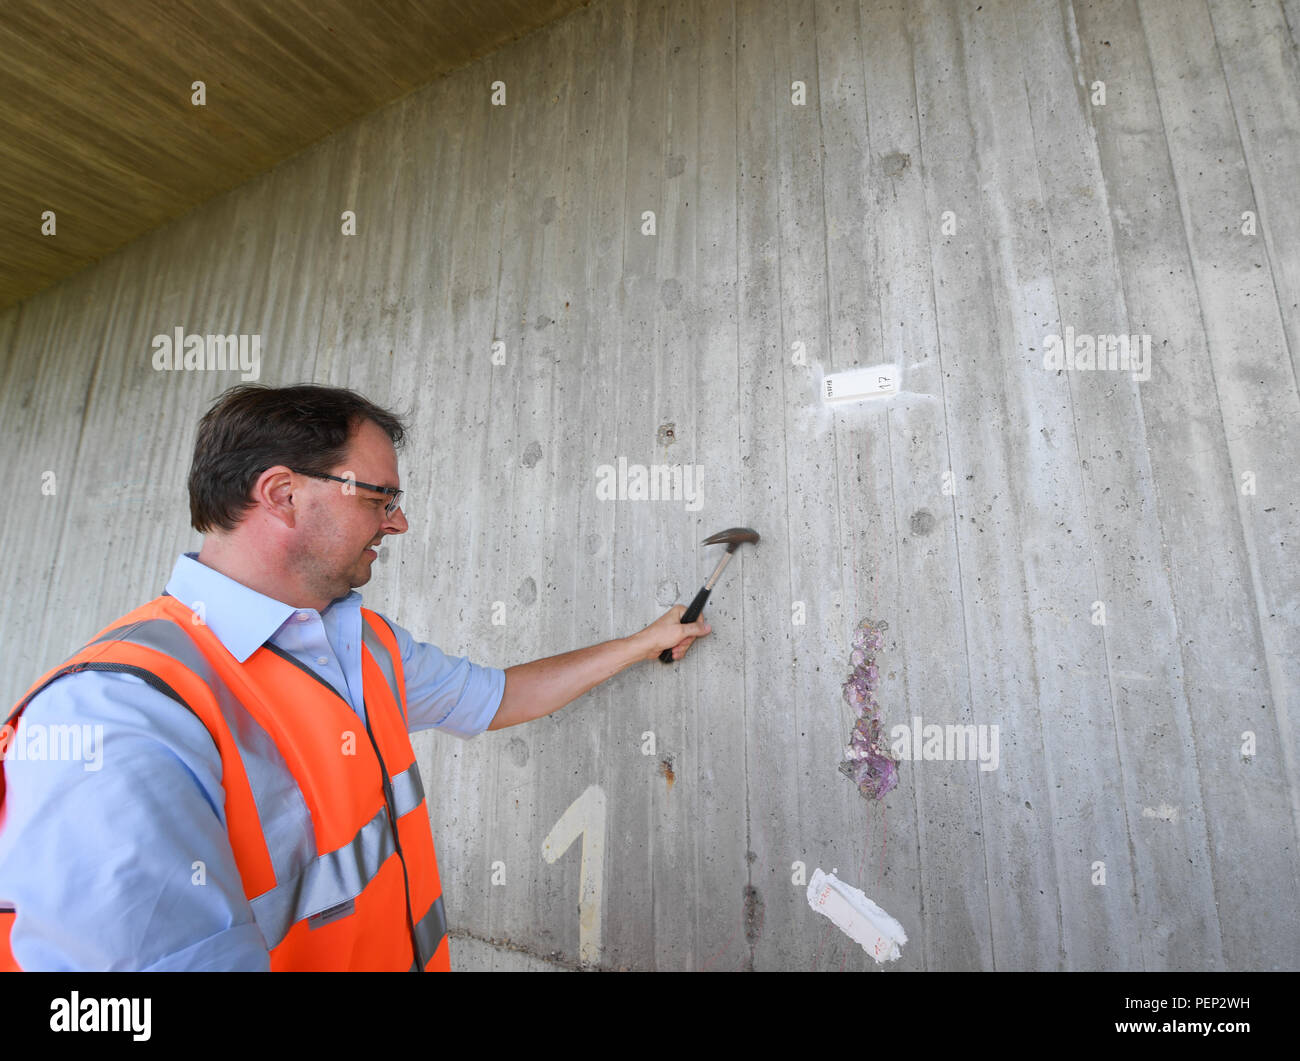 Wiesbaden, Germany. 16th Aug, 2018. Bridge inspector Marco Schmidt of the road traffic authority Hessen Mobil taps at a crack in the wall during a press event at the Salzbach Valley Bridge (Autobahn A66). Hessen Mobil uses the bridge as an example to show how the condition of a bridge is checked. Credit: Arne Dedert/dpa/Alamy Live News - Stock Image